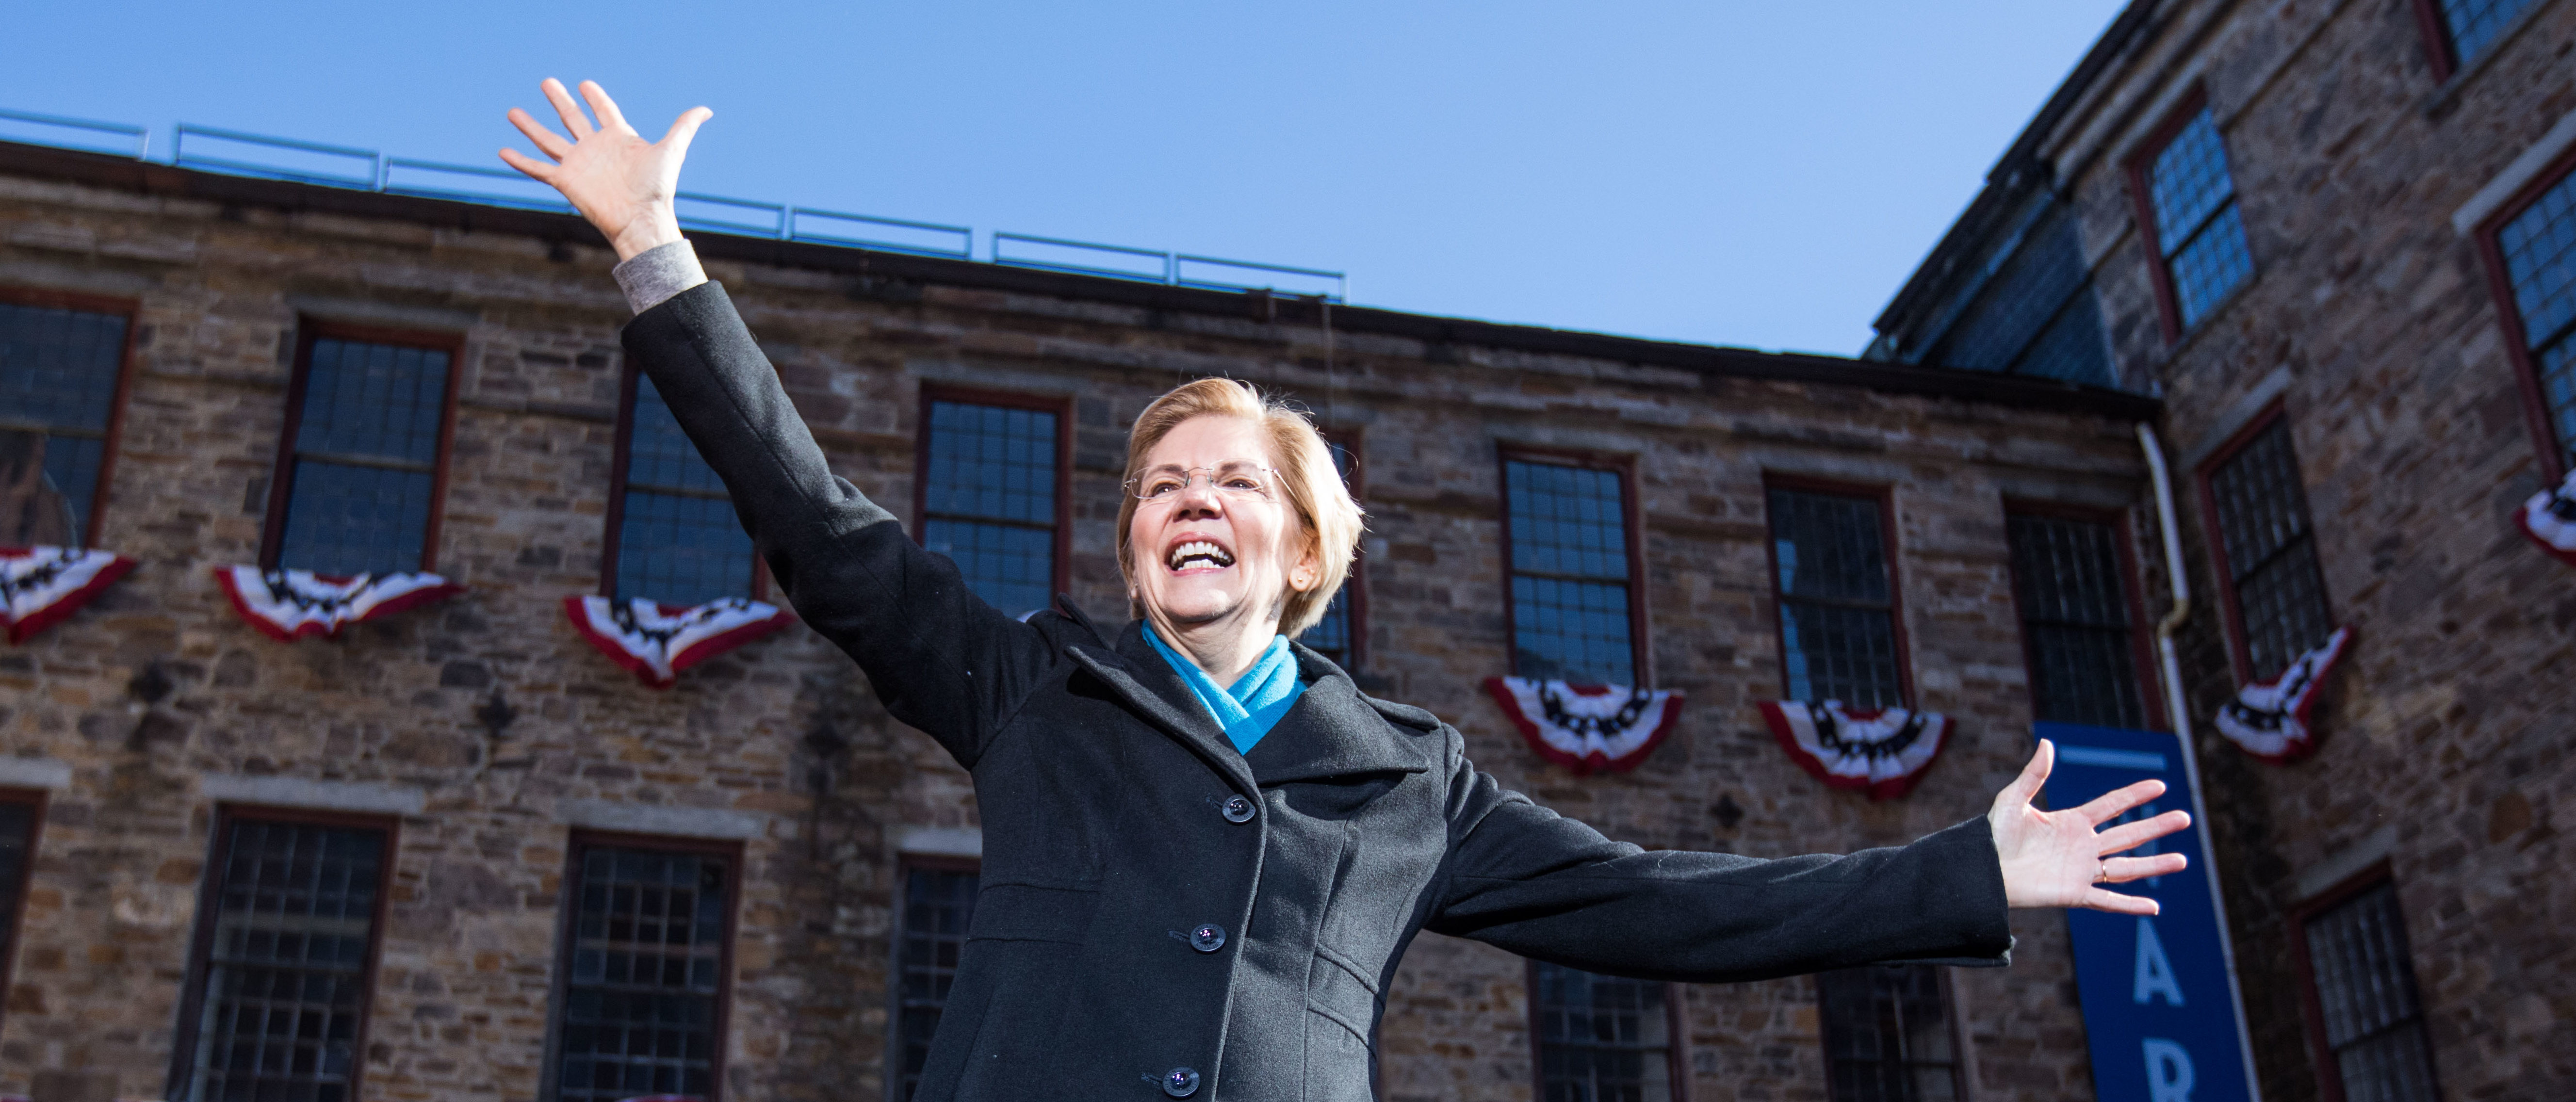 Sen. Elizabeth Warren (D-MA), announces her official bid for President on February 9, 2019 in Lawrence, Massachusetts. Warren announced today that she was launching her 2020 presidential campaign. (Photo by Scott Eisen/Getty Images)